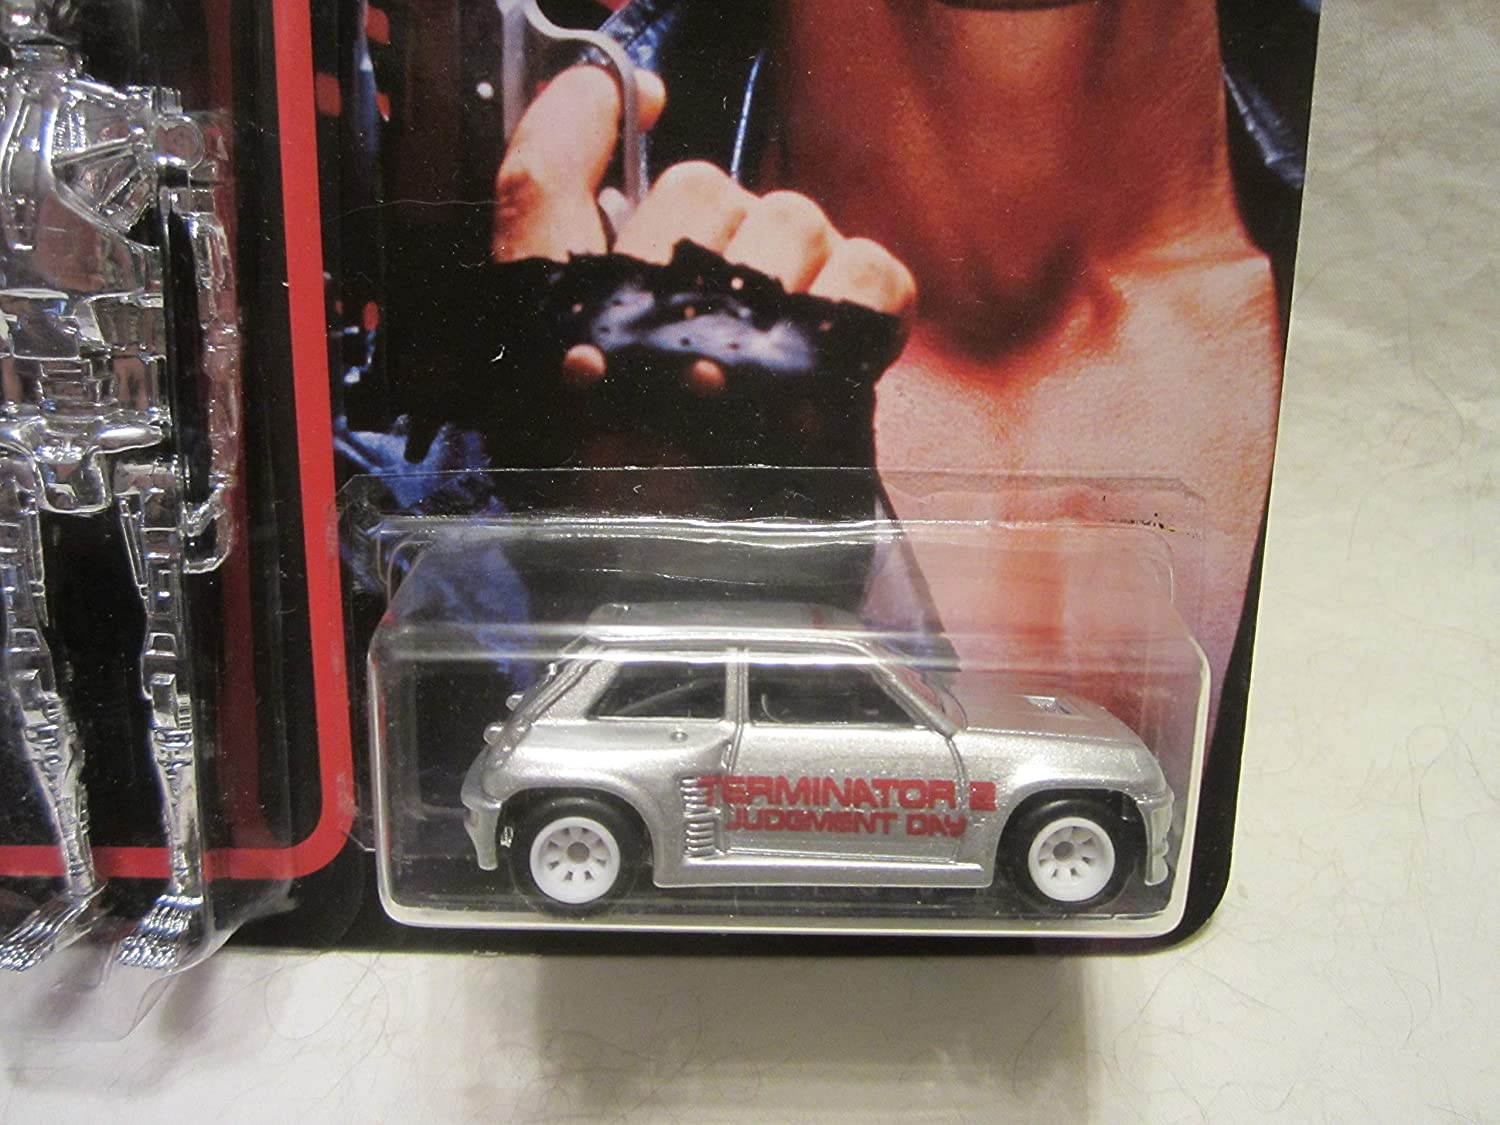 Amazon.com: Hot Wheels Custom Renault 5 Turbo - The Terminator Real Riders Rubber Wheels Collectible Die Cast Car Model 1:64 Scale Limited Edition!: